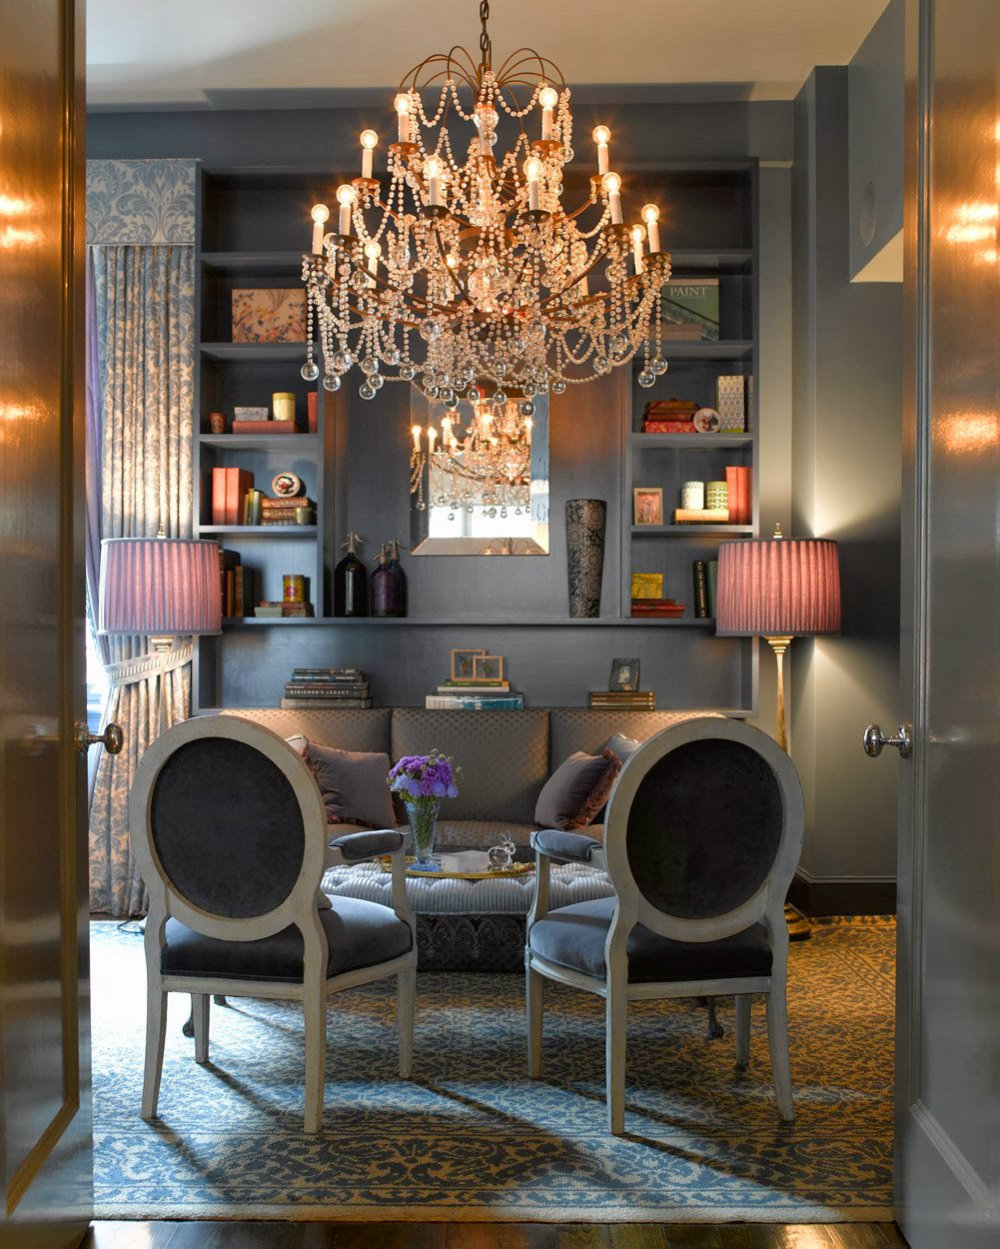 5 Crystal Chandeliers To Elevate Your Interiors